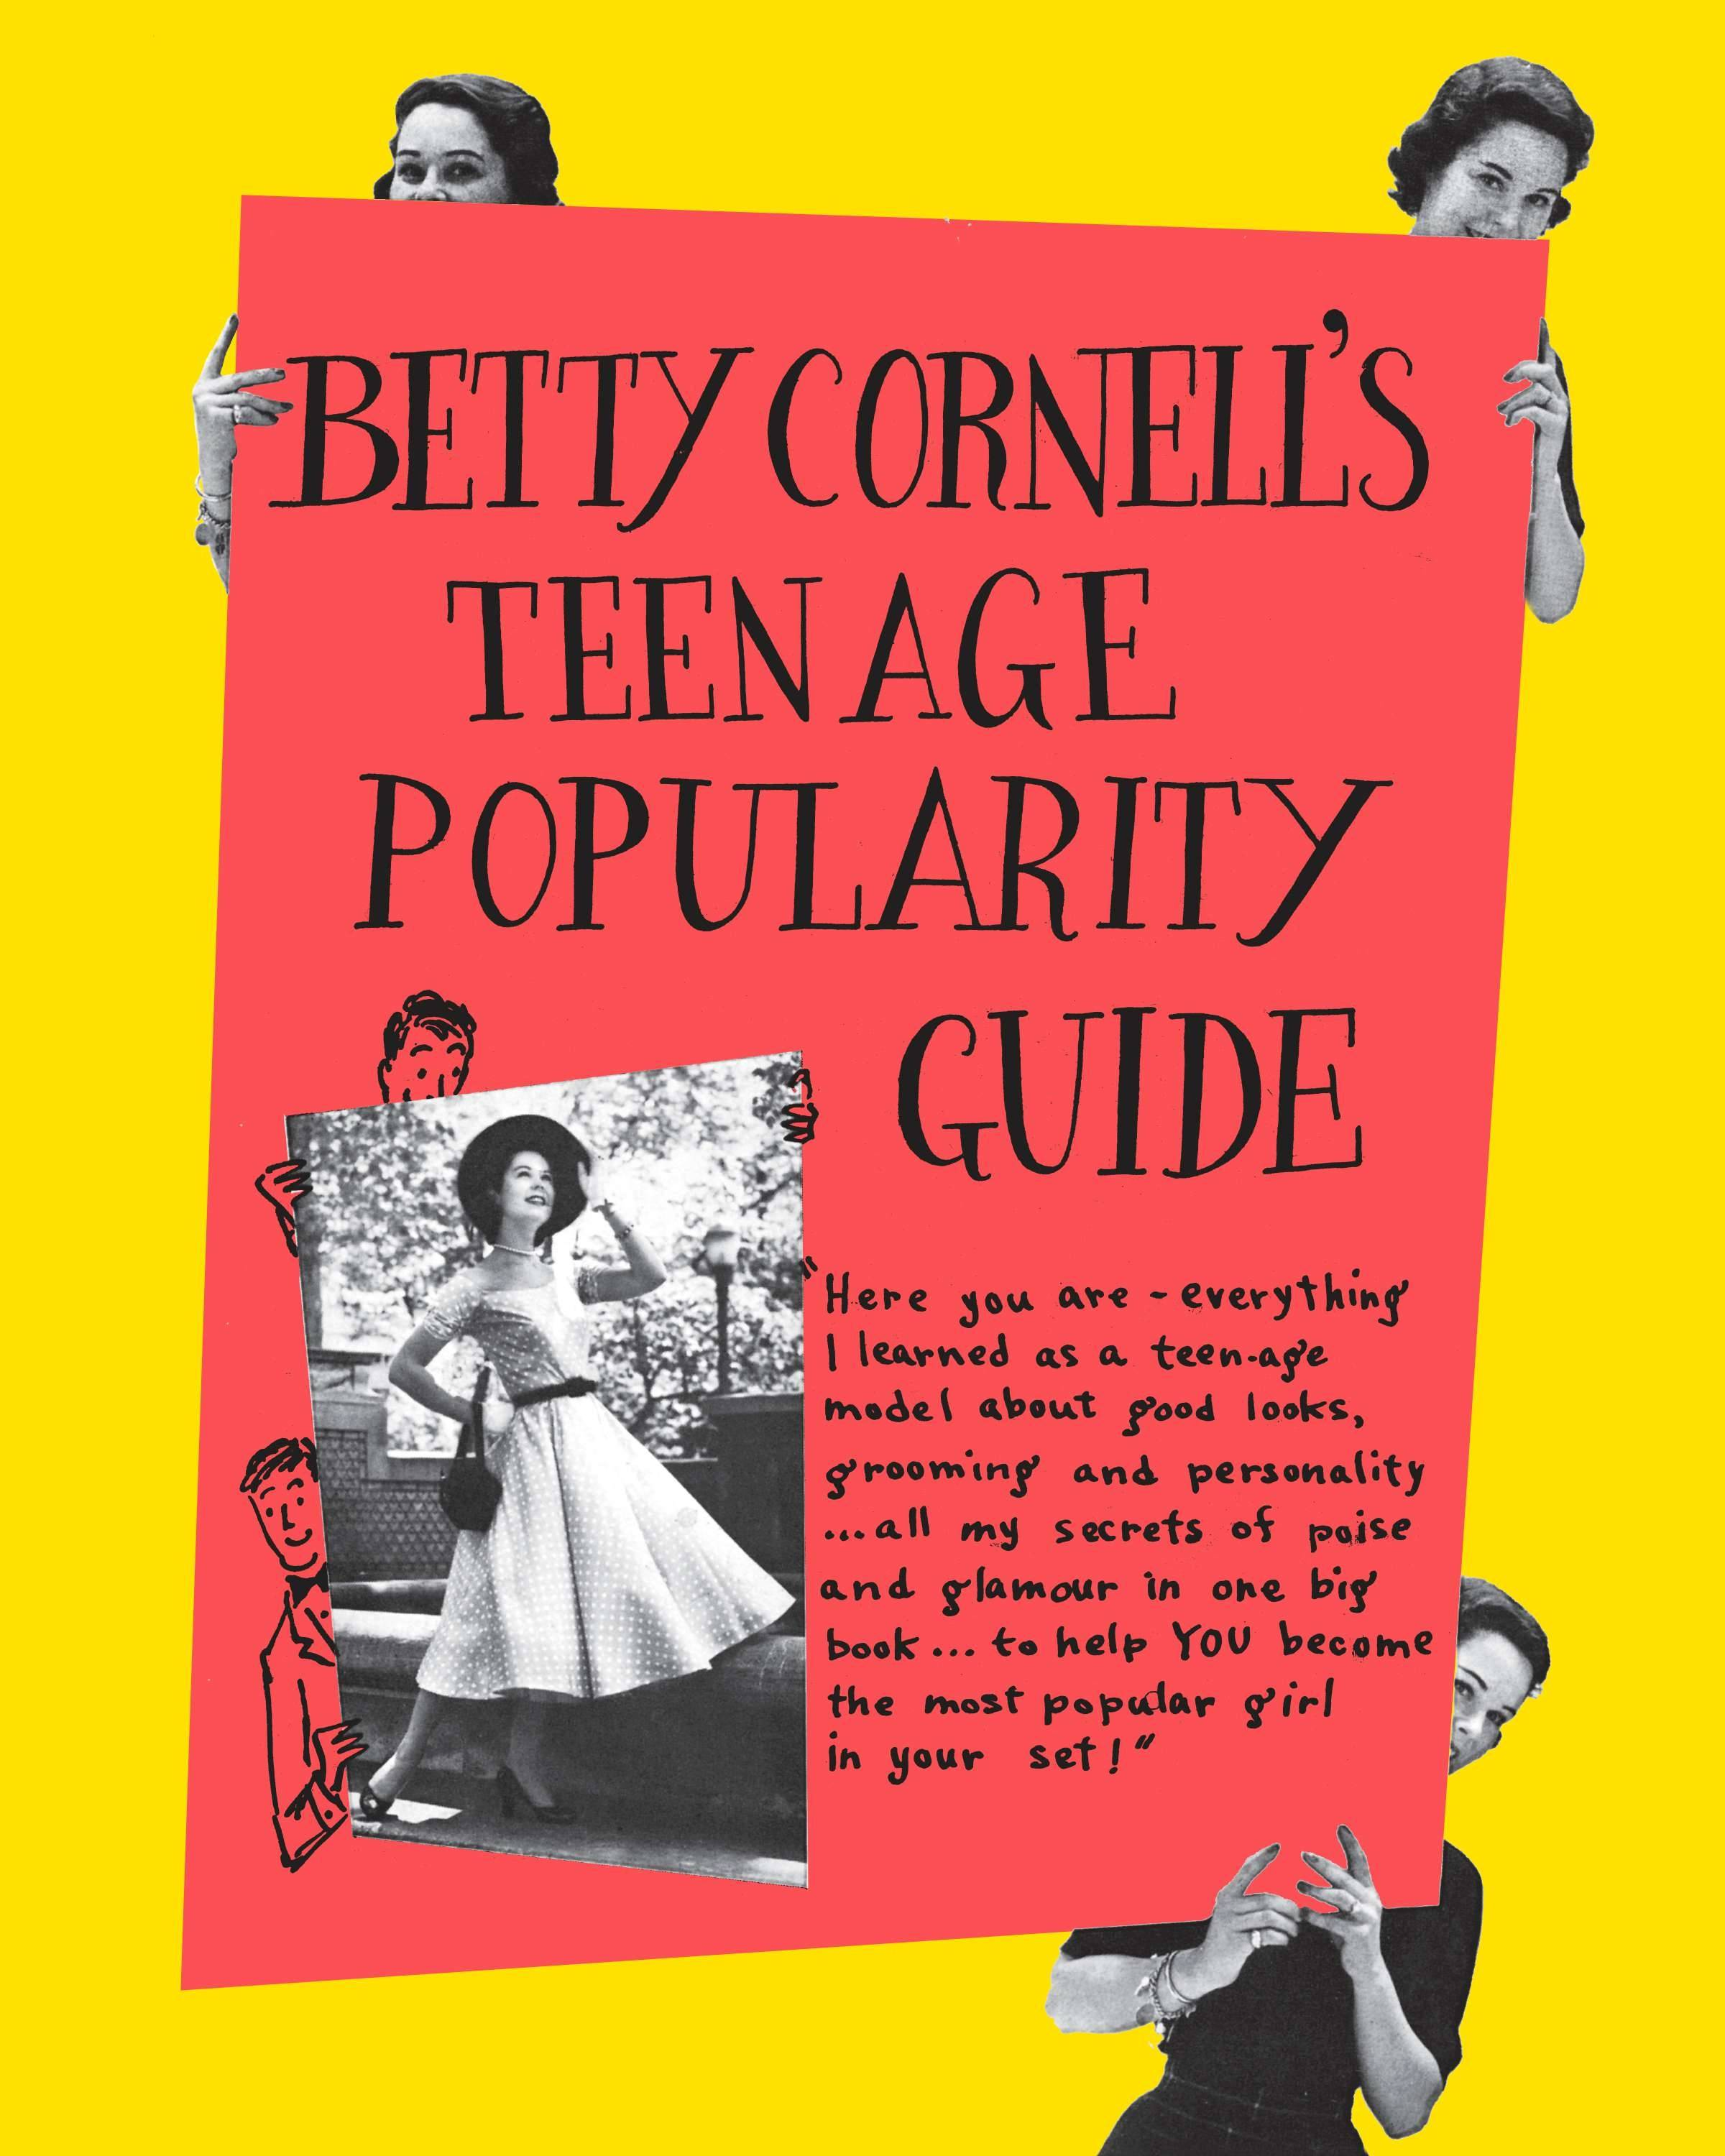 "Maya Van Wagenen, a 15-year-old author, decided to follow the advice of the 1950s book ""Betty Cornell's Teen-Age Popularity Guide."" Her experiences led to the book, ""Popular: Vintage Wisdom for a Modern Geek,"" a movie deal, and an introduction to Betty Cornell, now in her 80s."